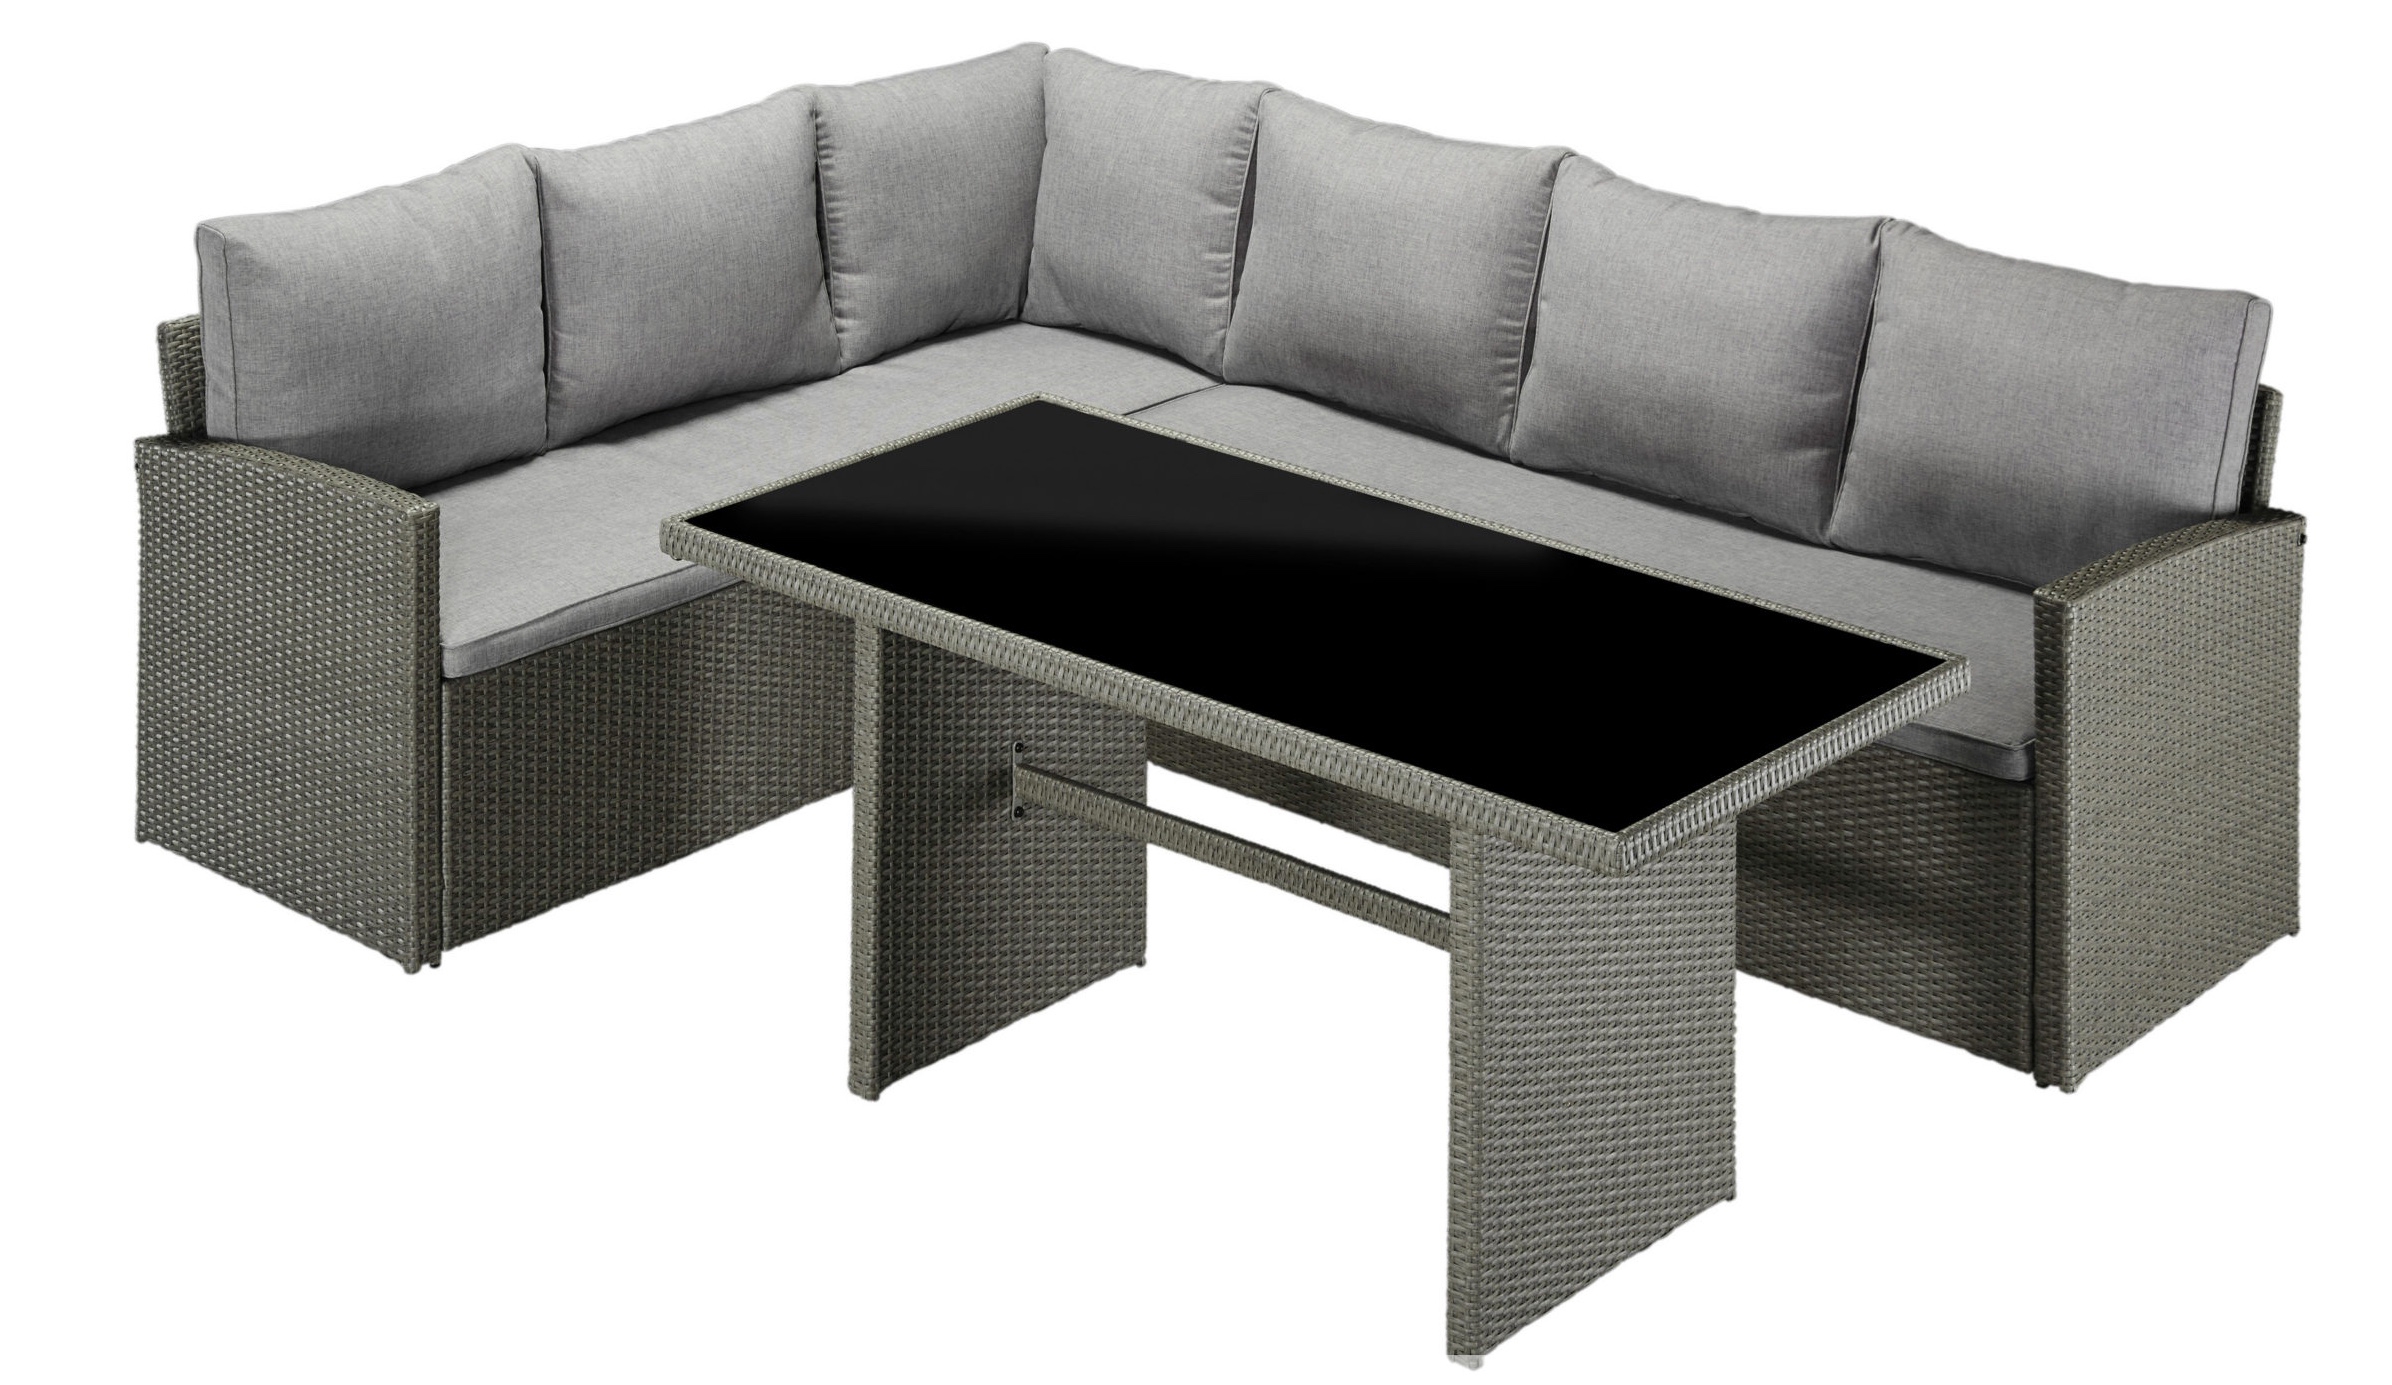 ecklounge gratengruppe sitzgruppe polyrattan tisch 145x70 auflagen grau 7150382 ebay. Black Bedroom Furniture Sets. Home Design Ideas